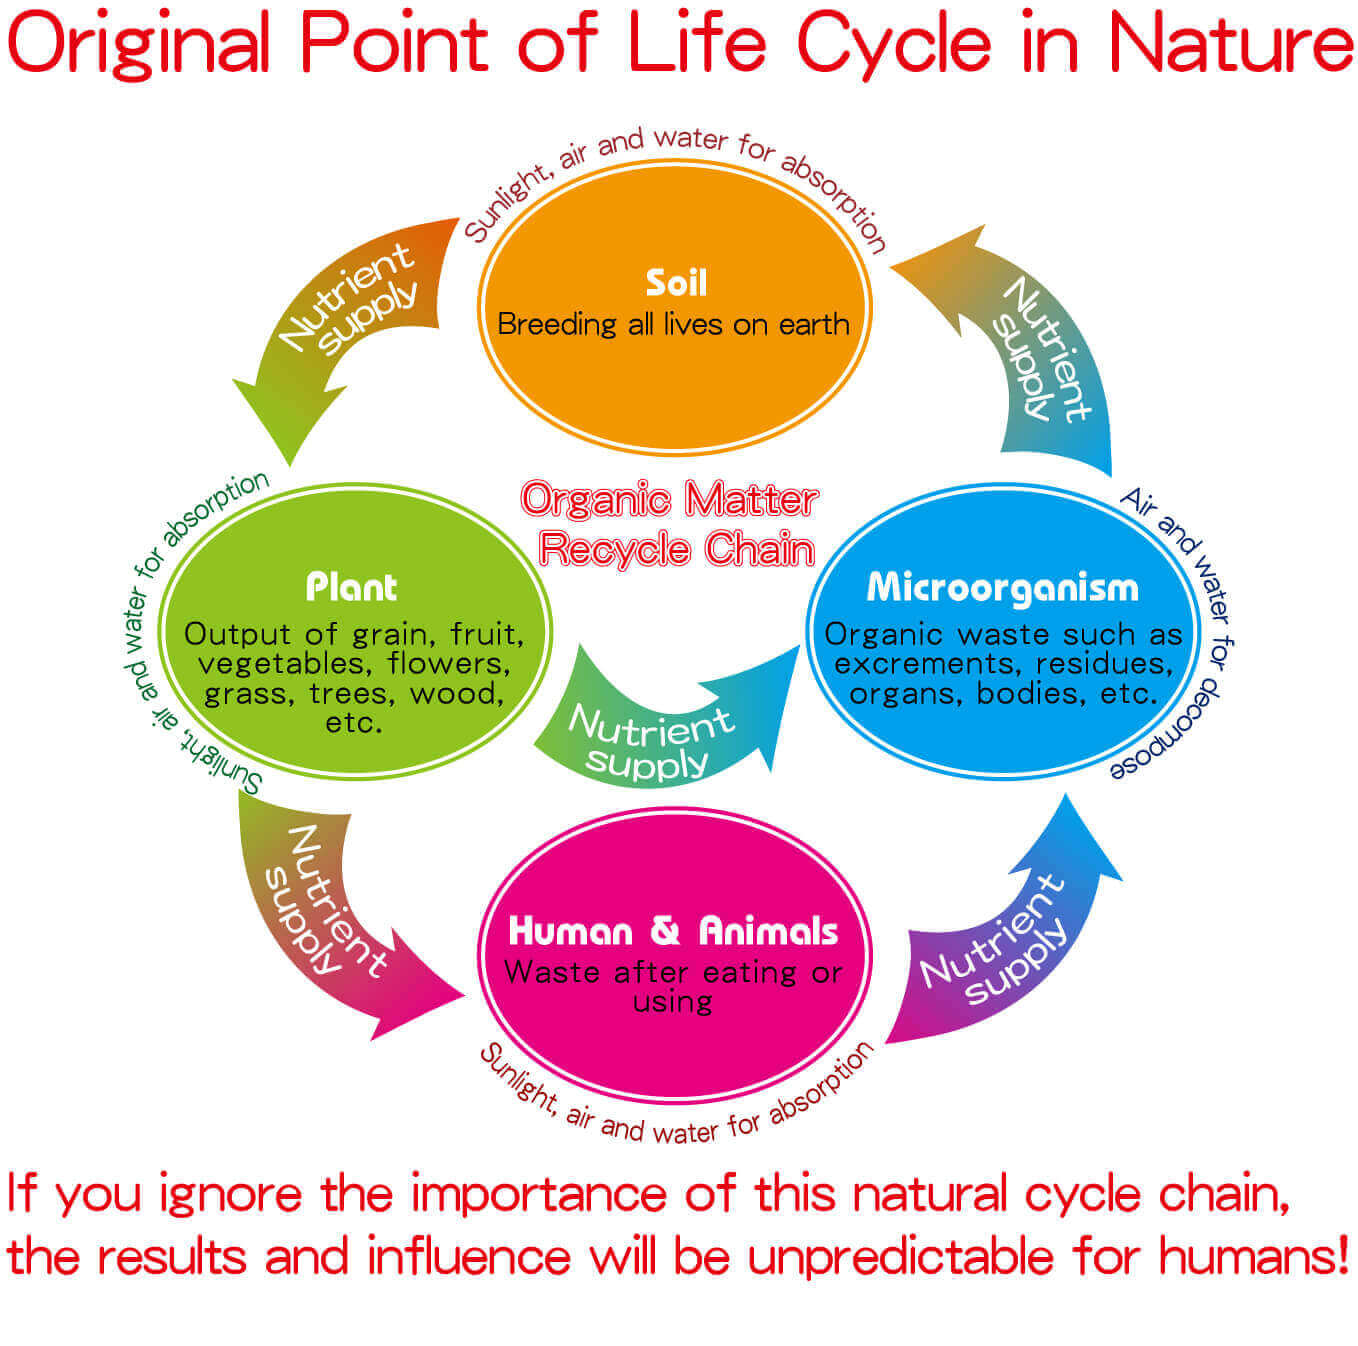 organic matter recycle chain